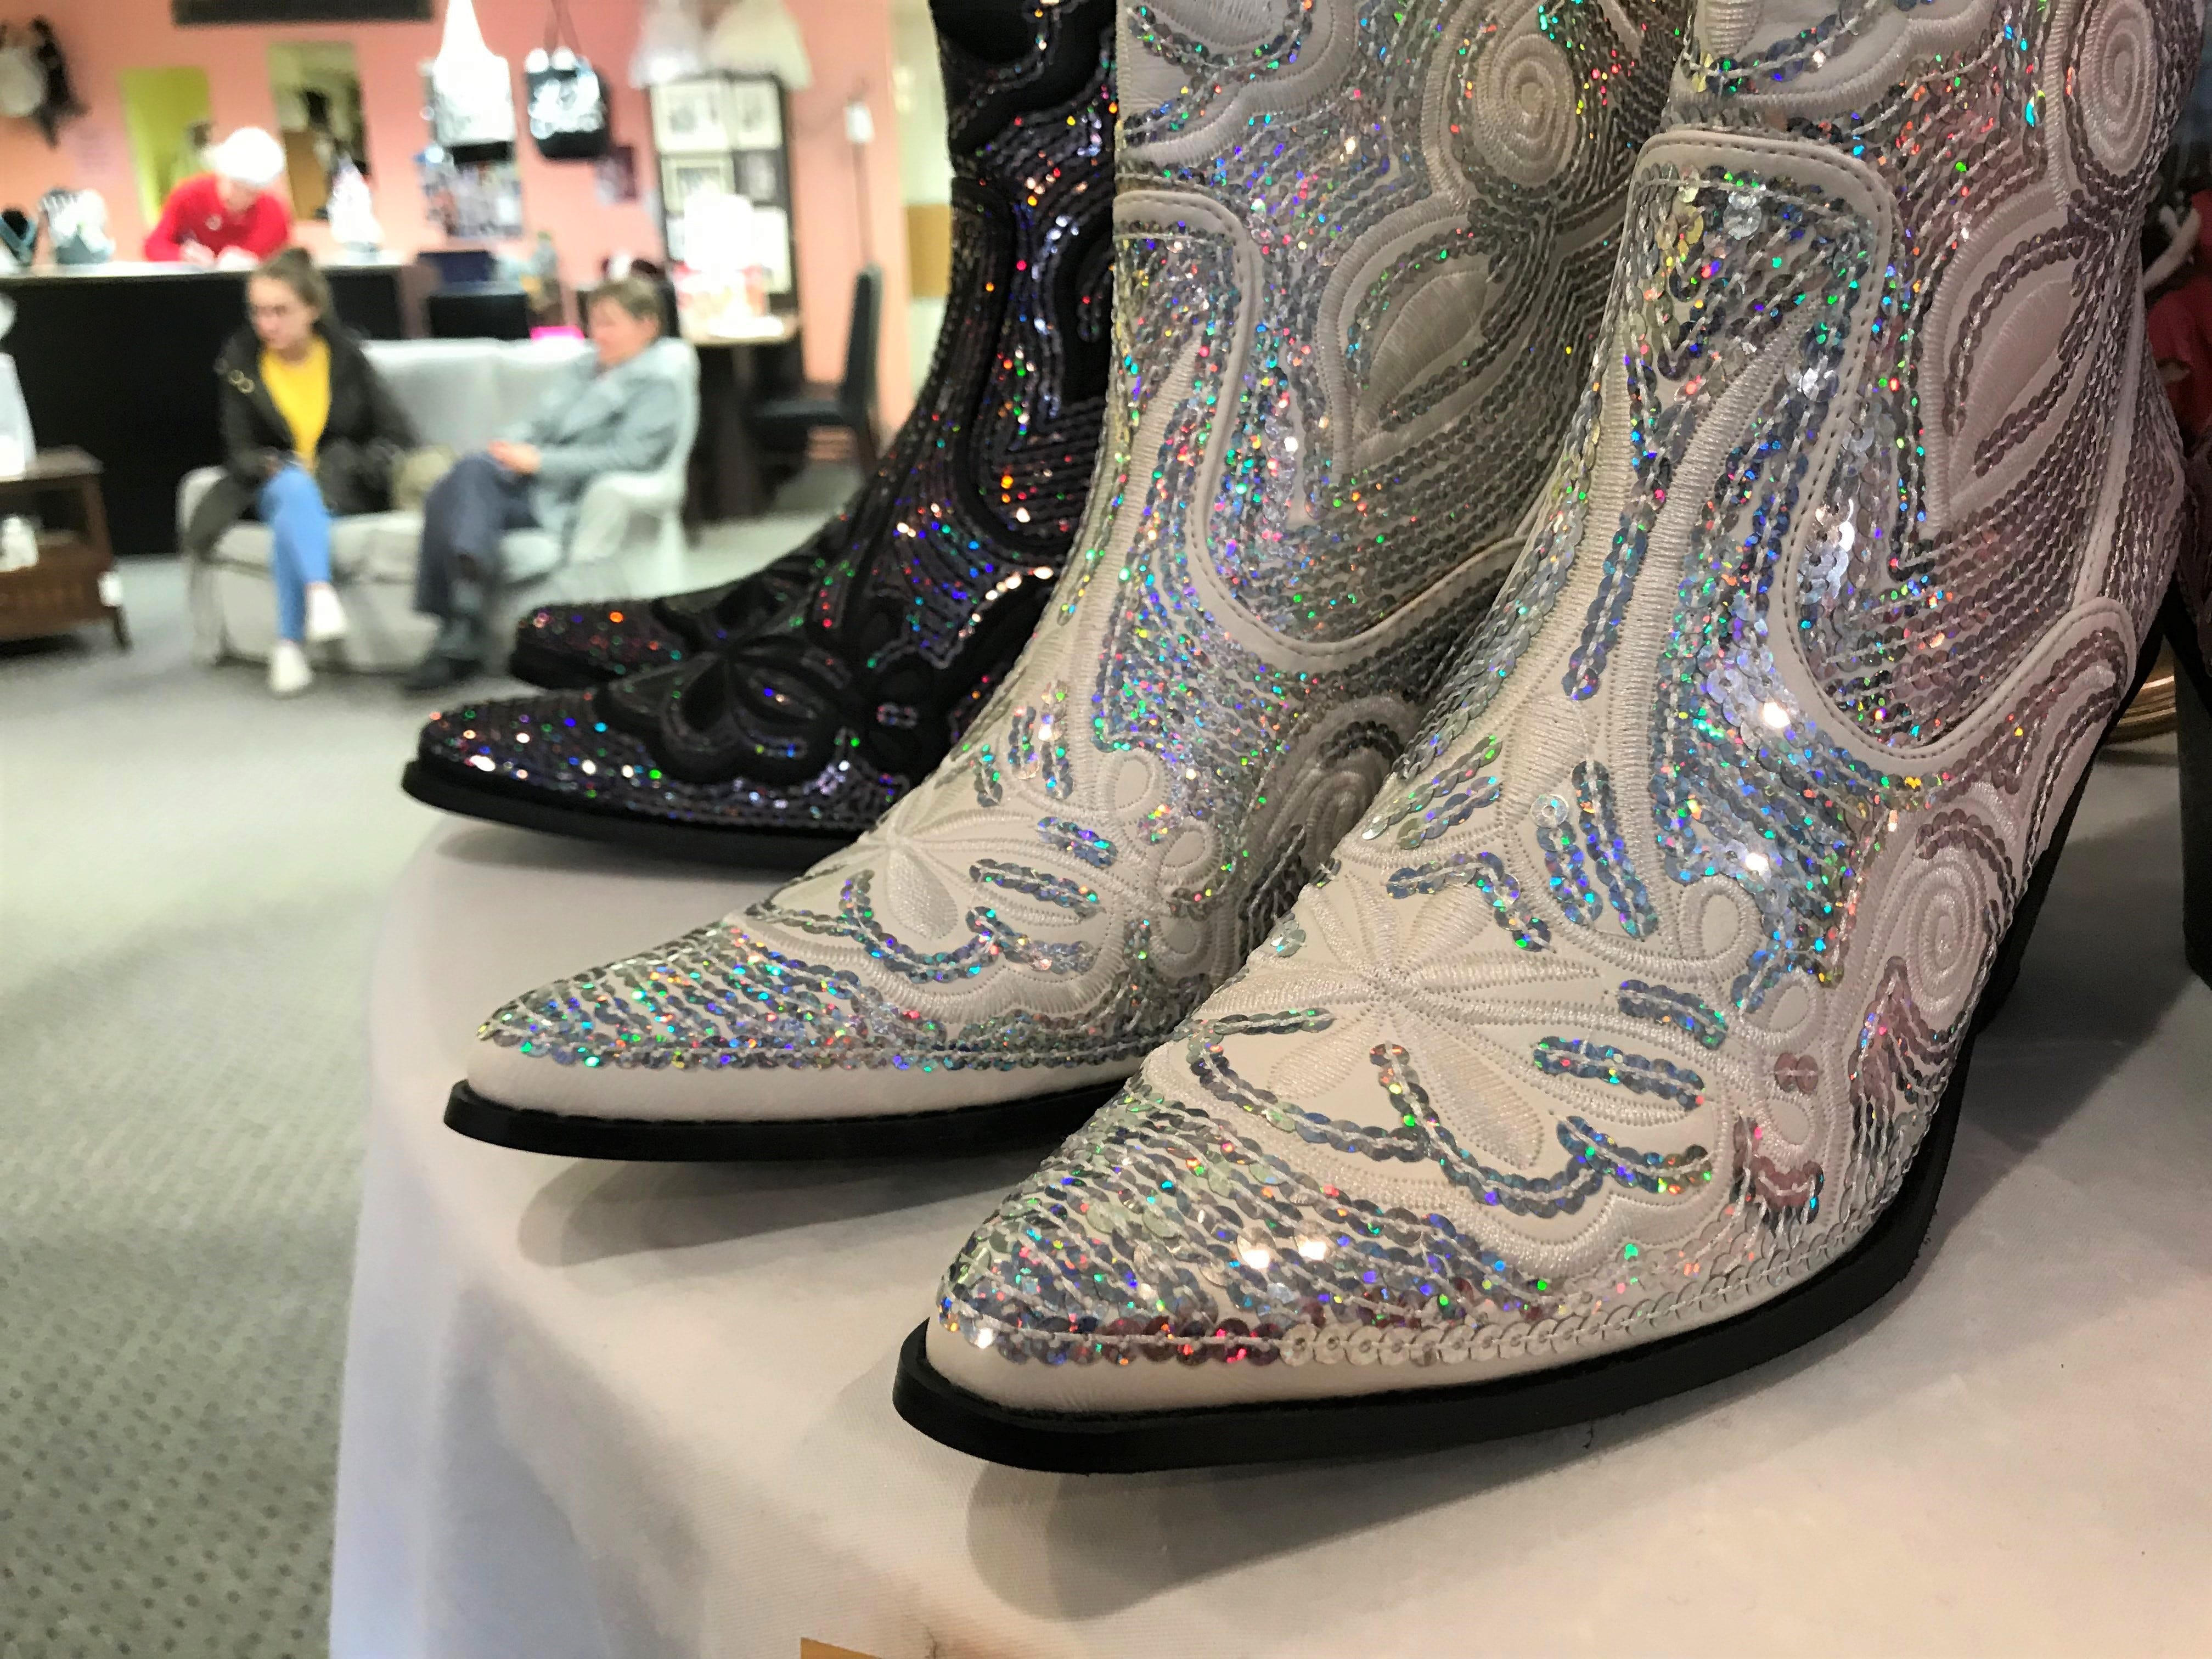 The store With This Ring sells much more than just wedding dresses. These sequined cowboy boots are 15 percent off.